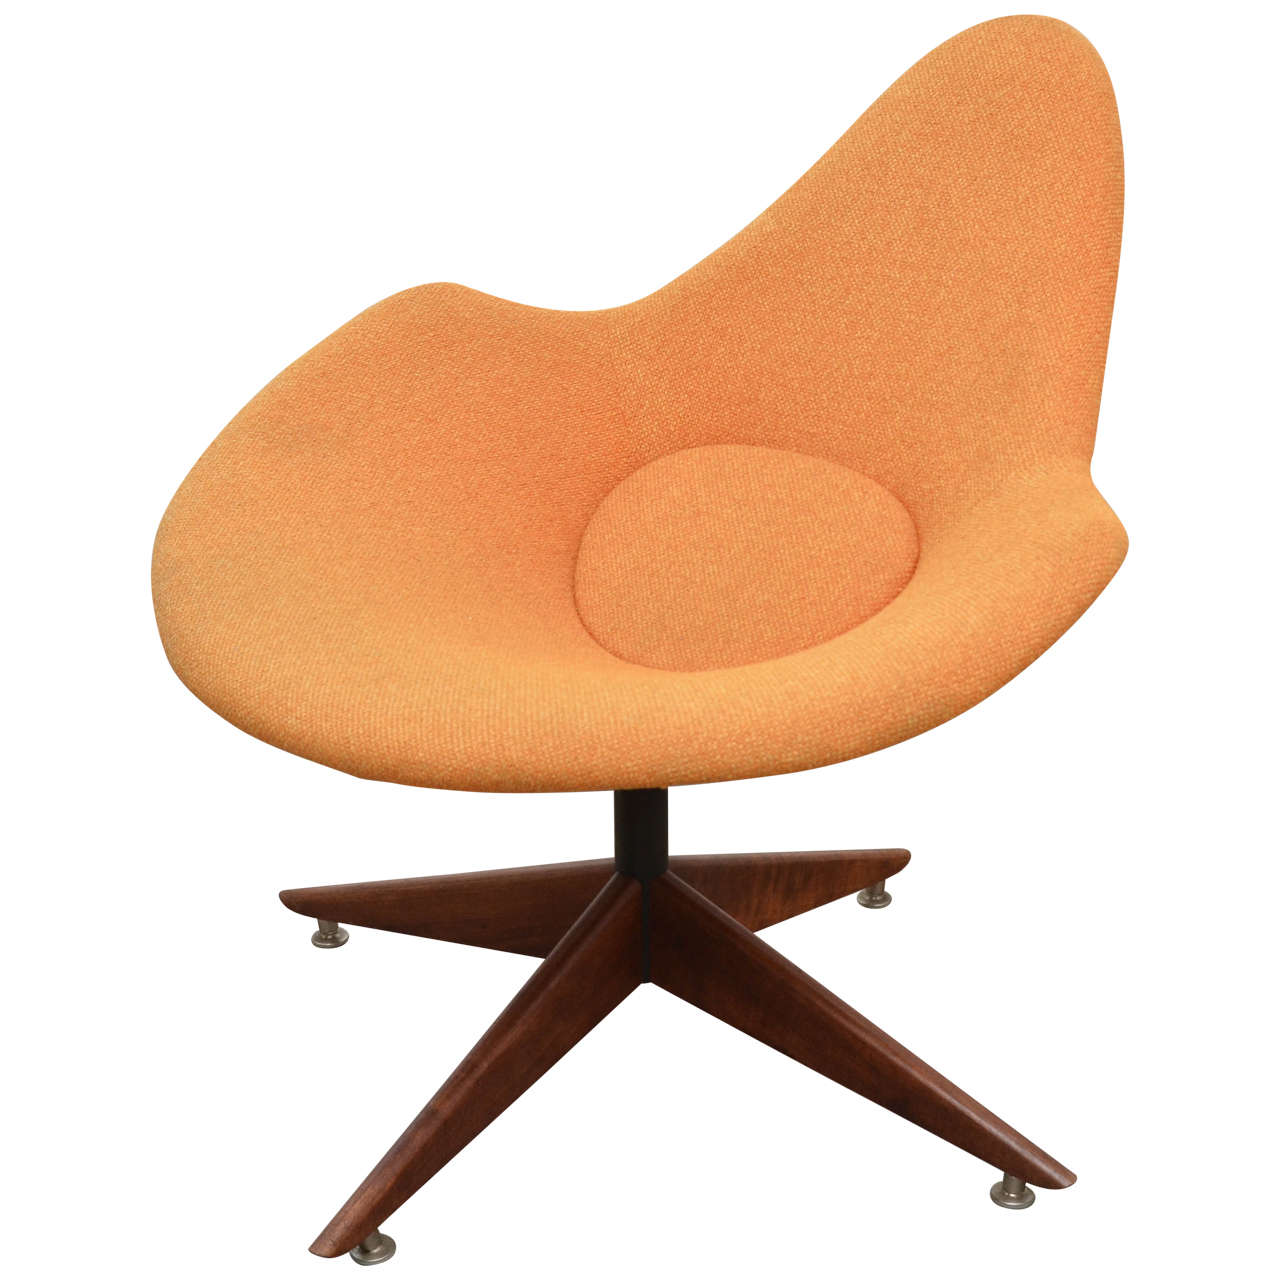 Chair Swivel Base Mod Styled Chair With Wood Swivel Base At 1stdibs